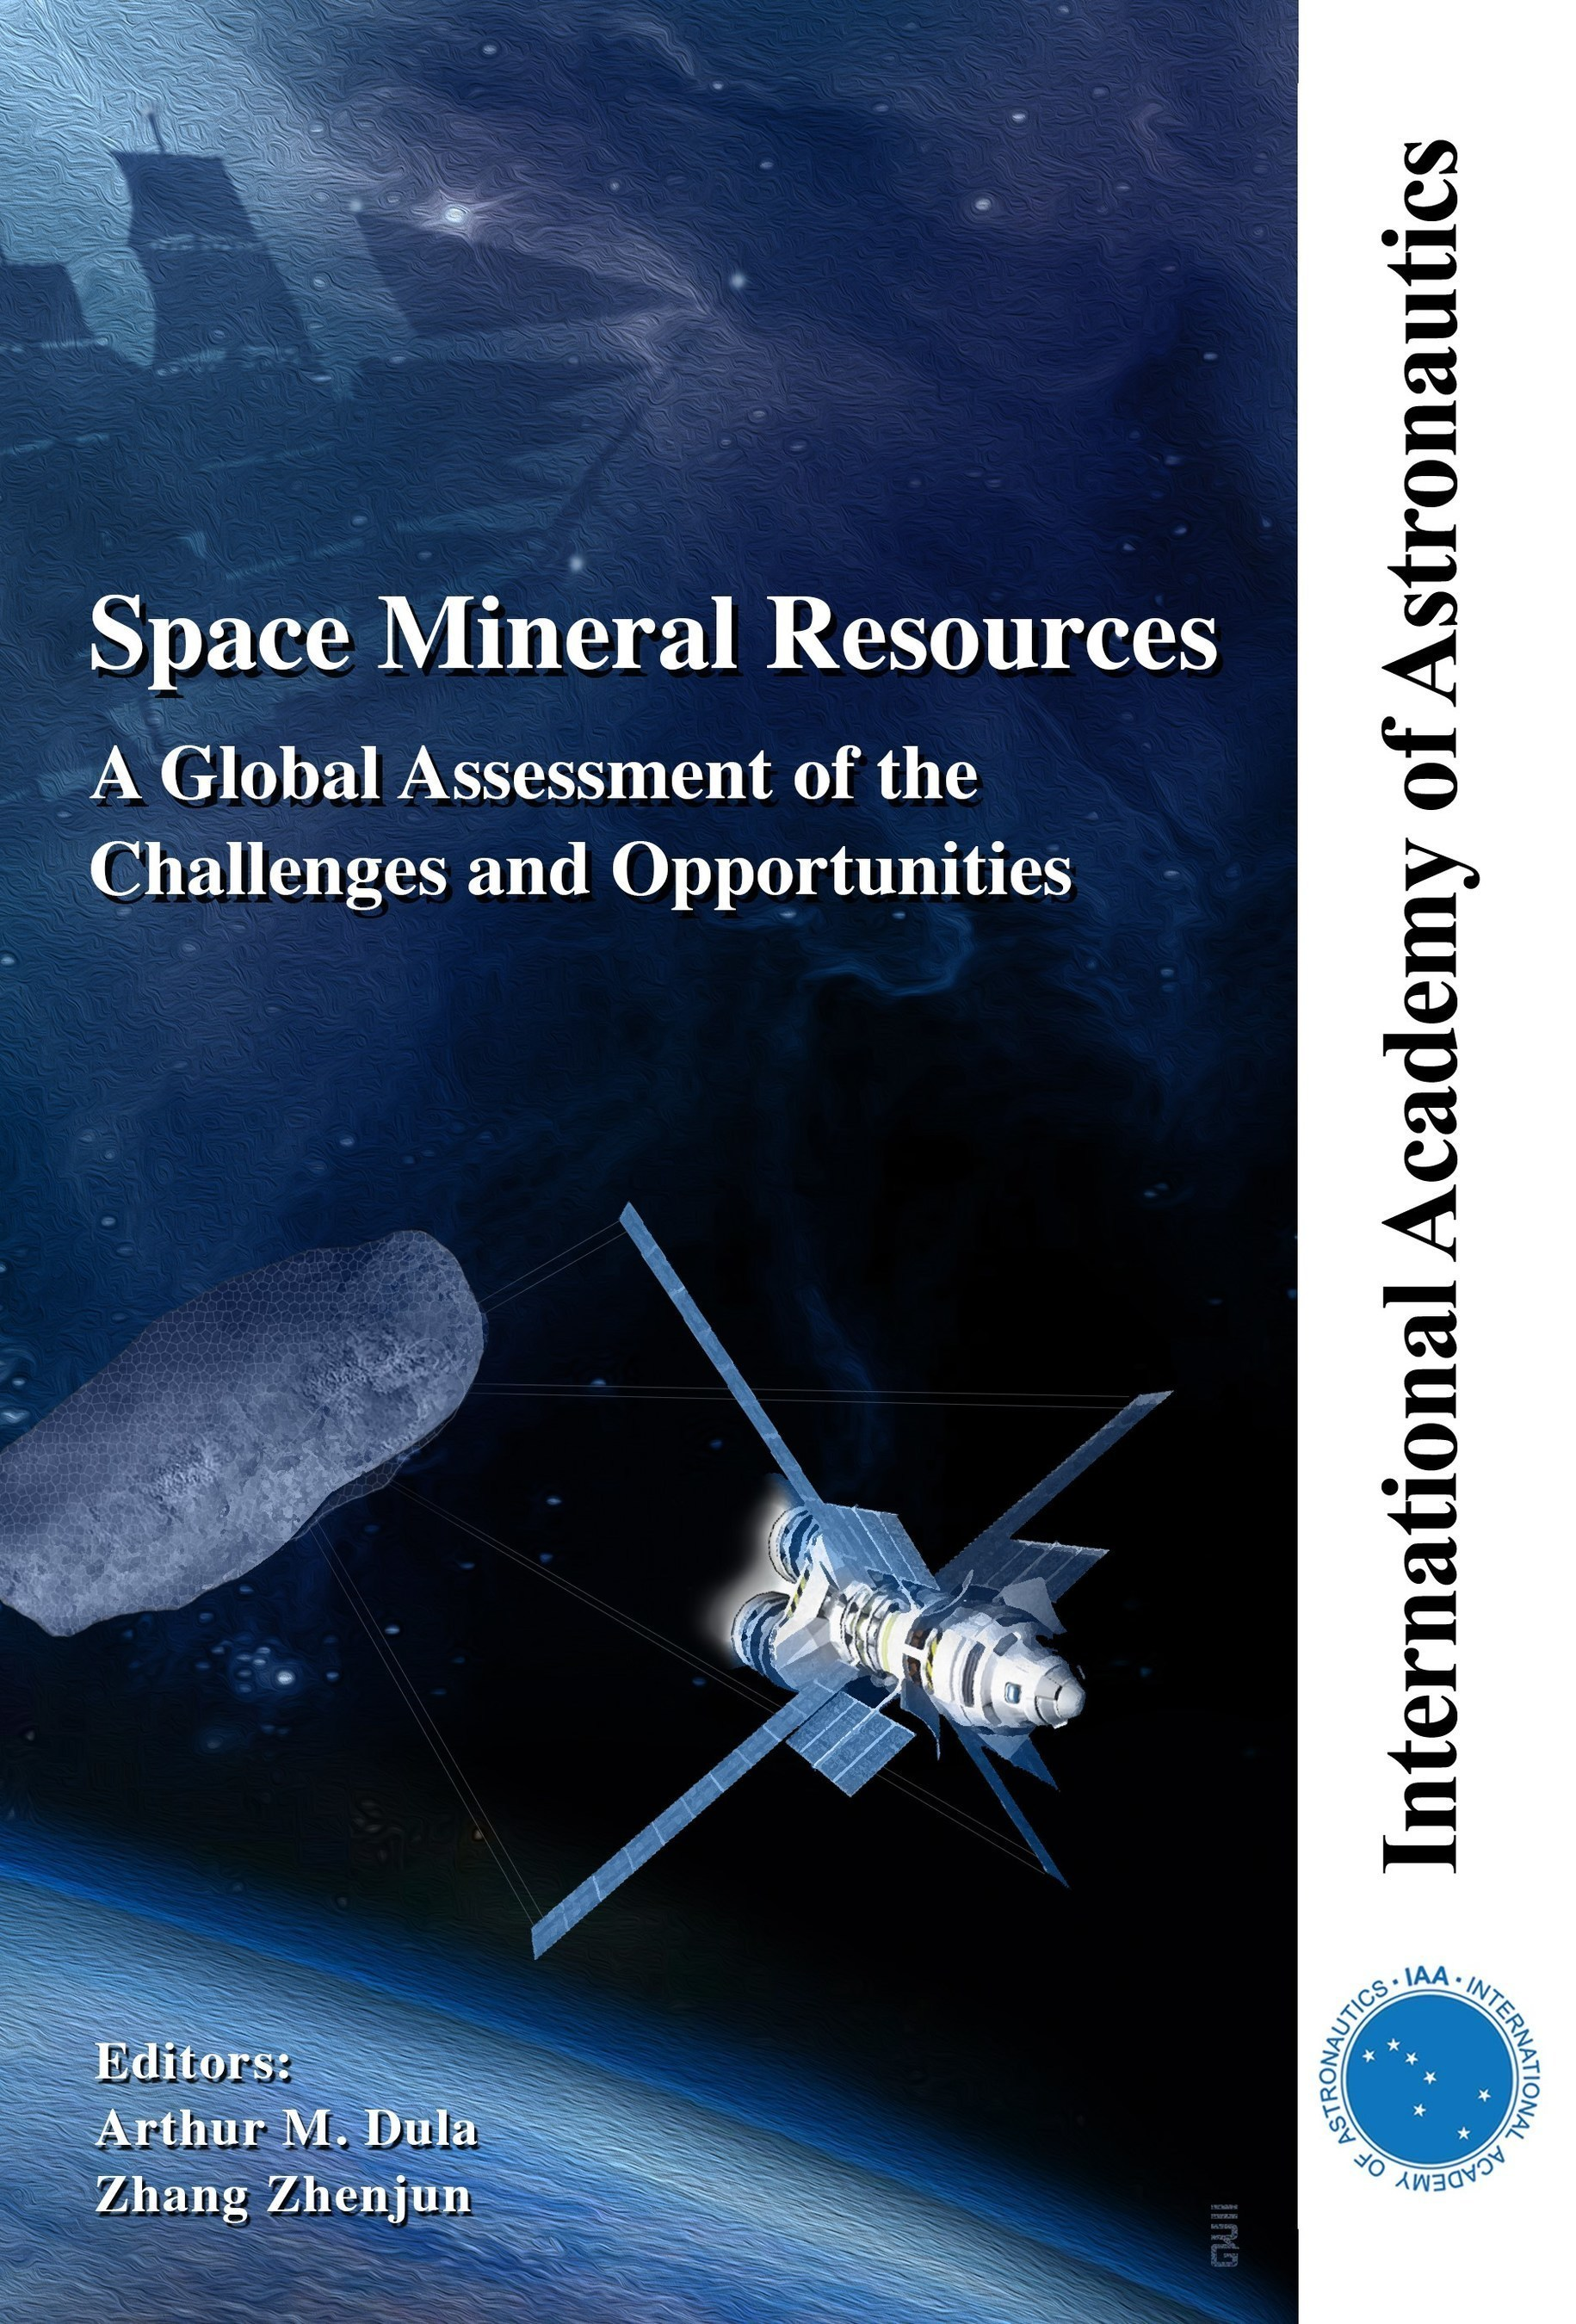 International Study Finds Global Benefits, Economic Gains From Mining Space Mineral Resources